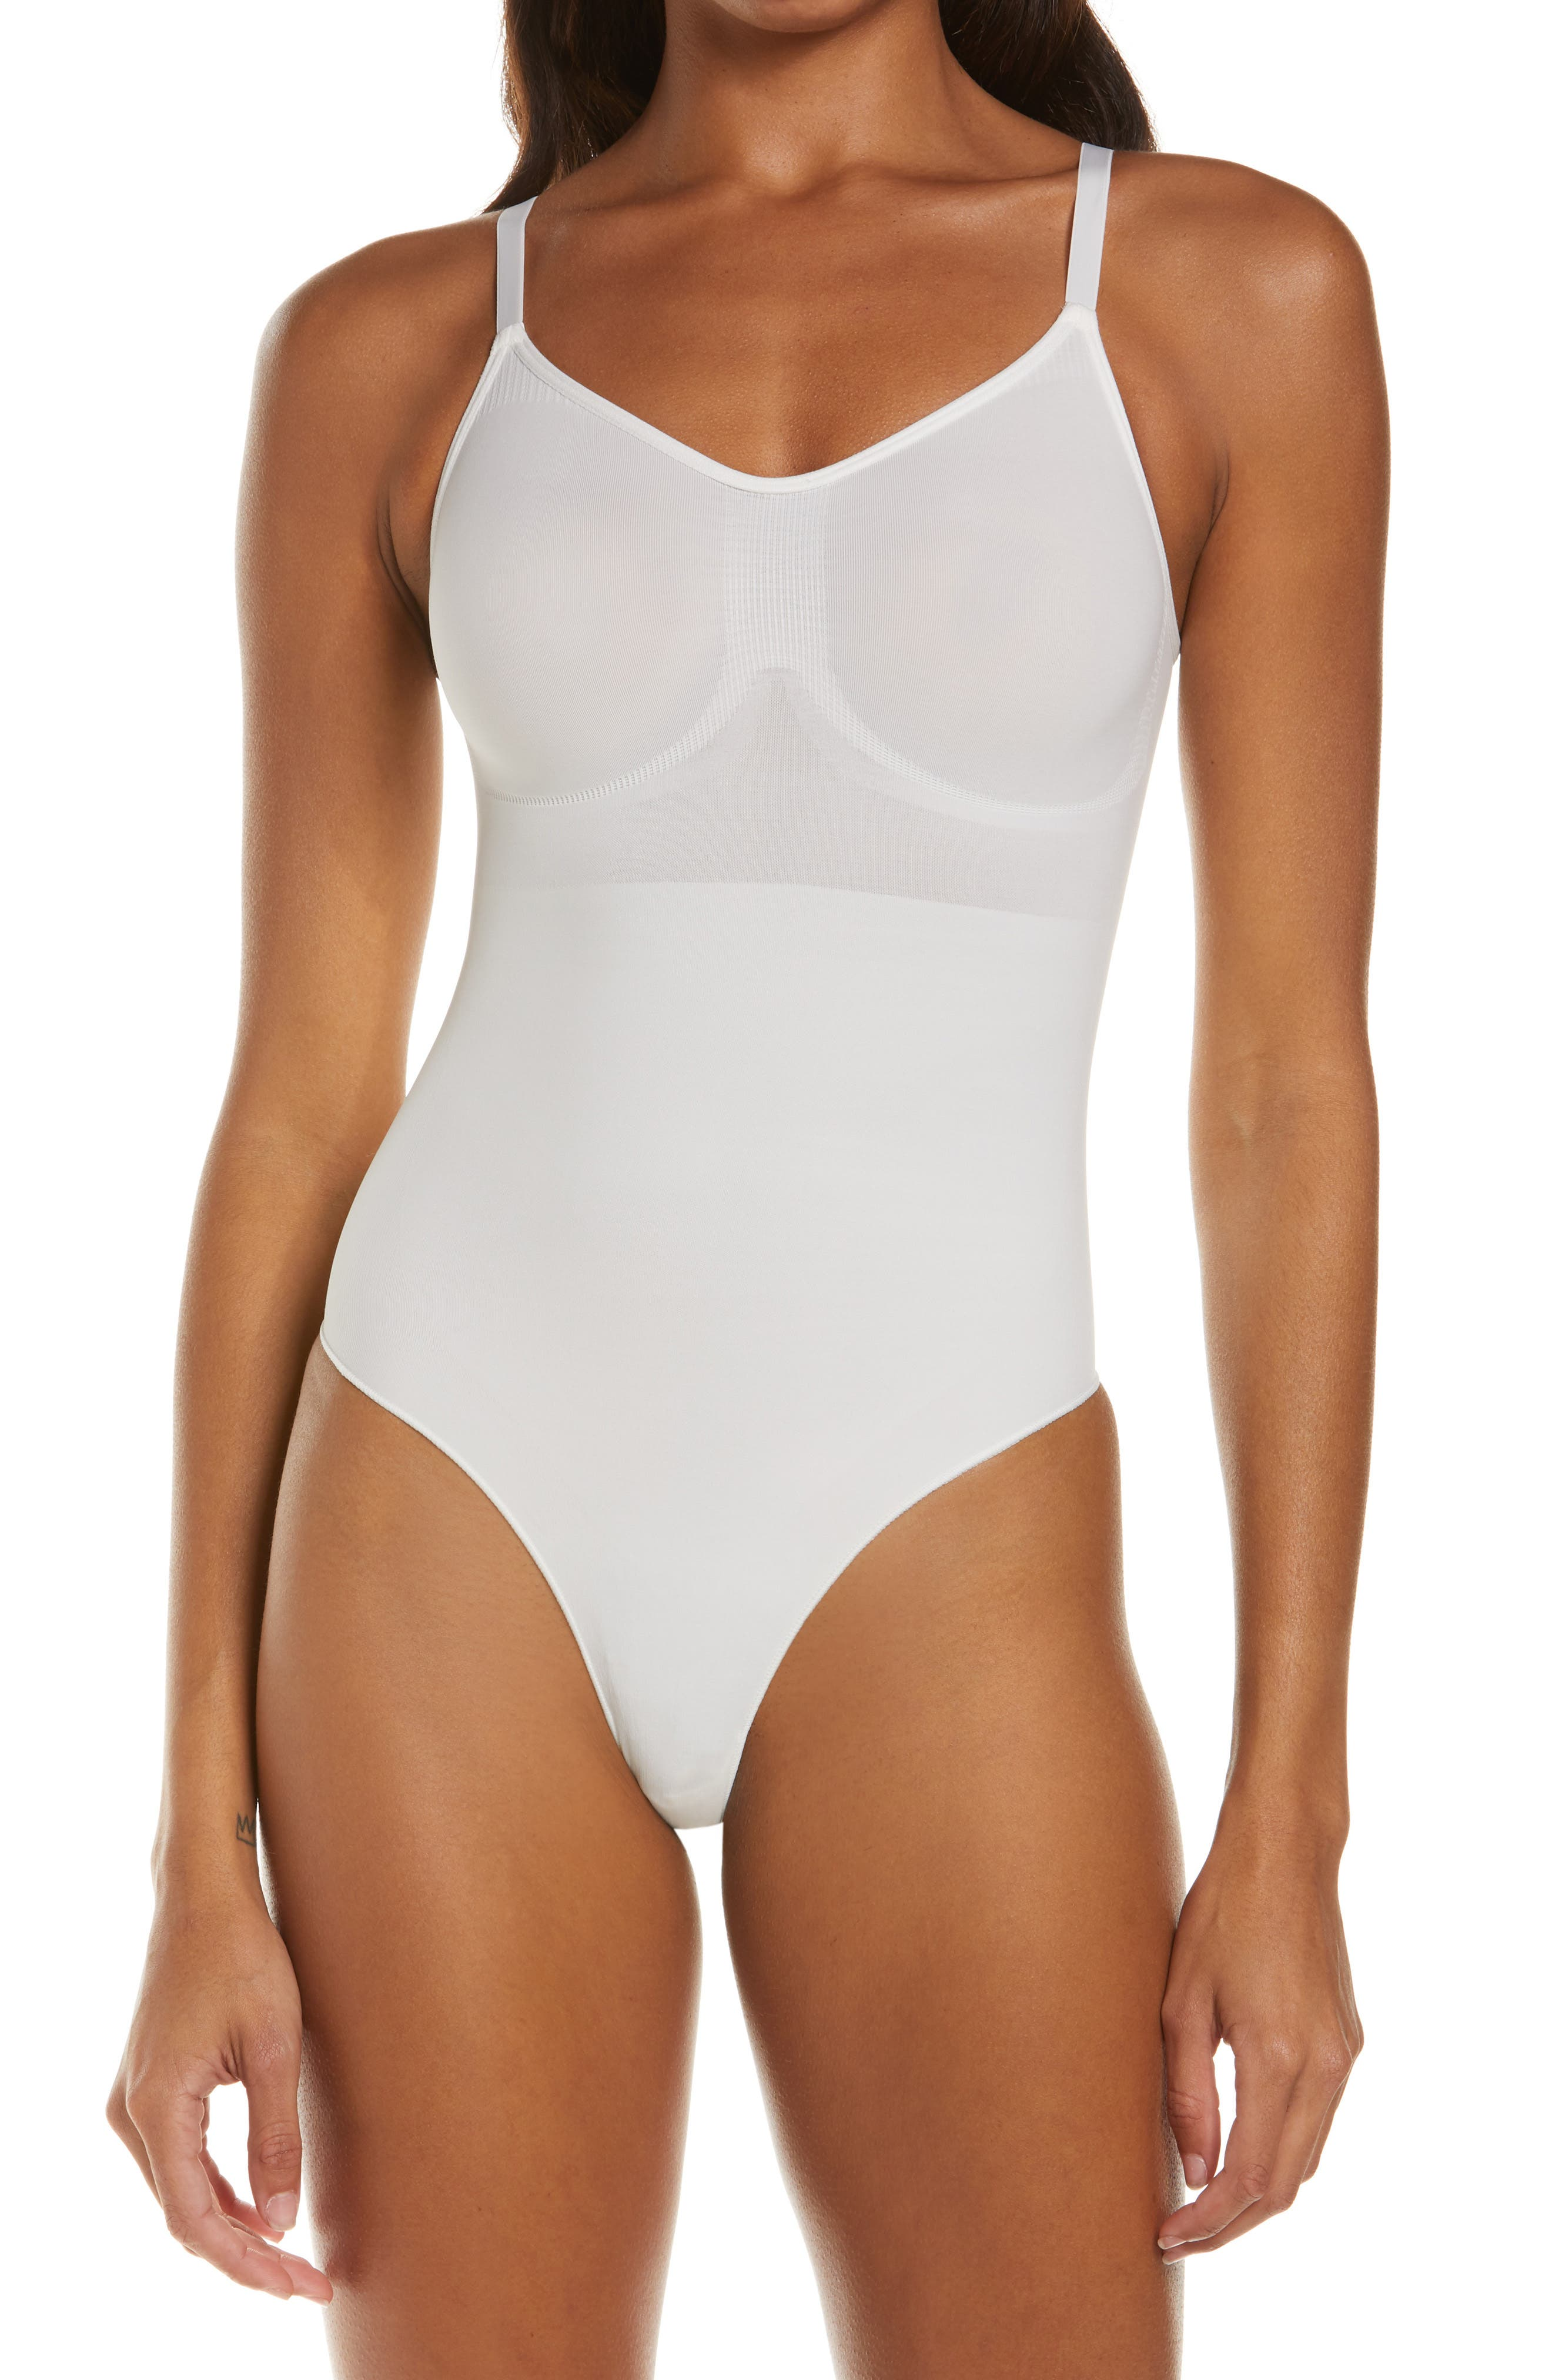 Designed to smooth your core, support your chest and cinch your waist, this high-cut thong bodysuit provides invisible sculpting under clothes. Style Name: Skims Seamless Sculpt Sculpting Thong Bodysuit. Style Number: 6139692. Available in stores.